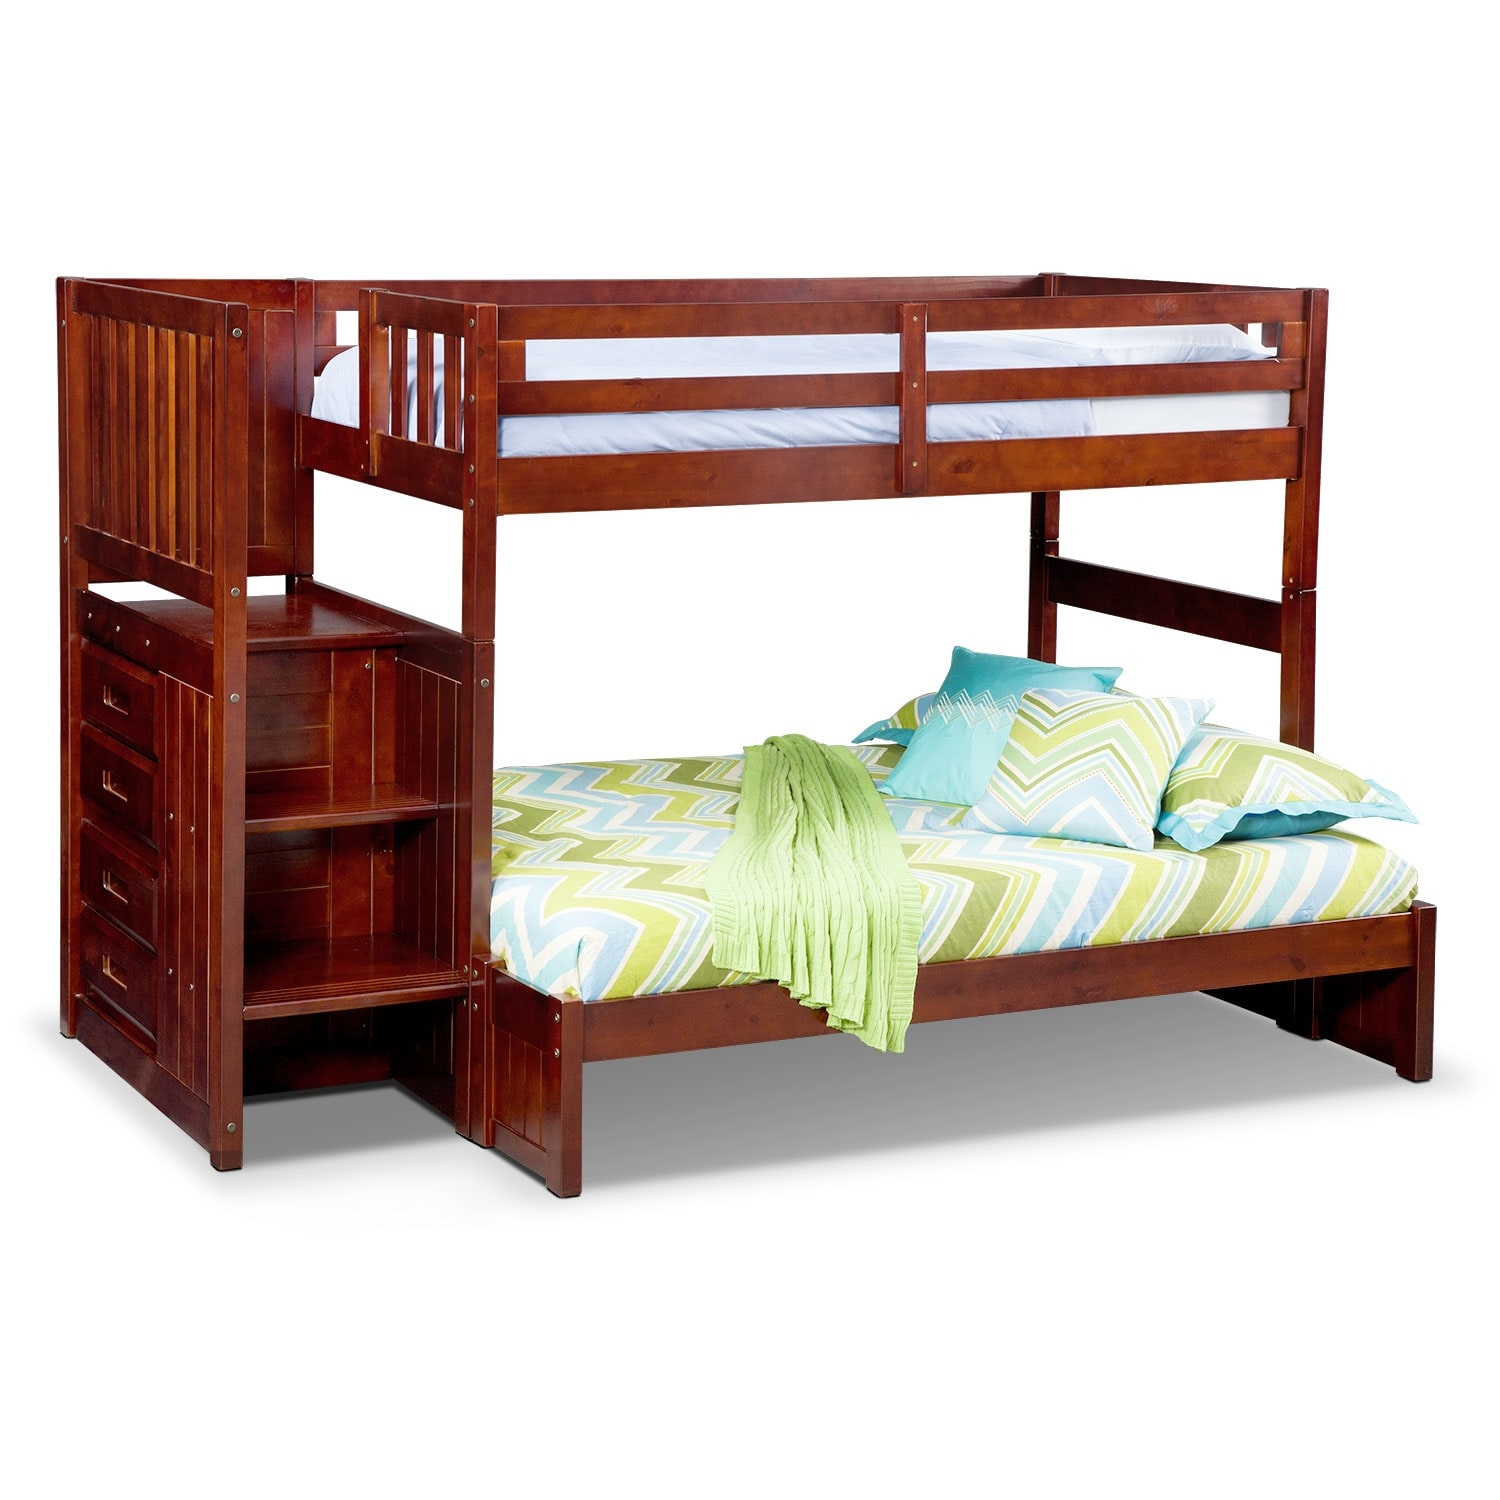 Kids Furniture - Ranger Merlot Twin/Full Bunk Bed with Stairs and 4-Drawer Storage